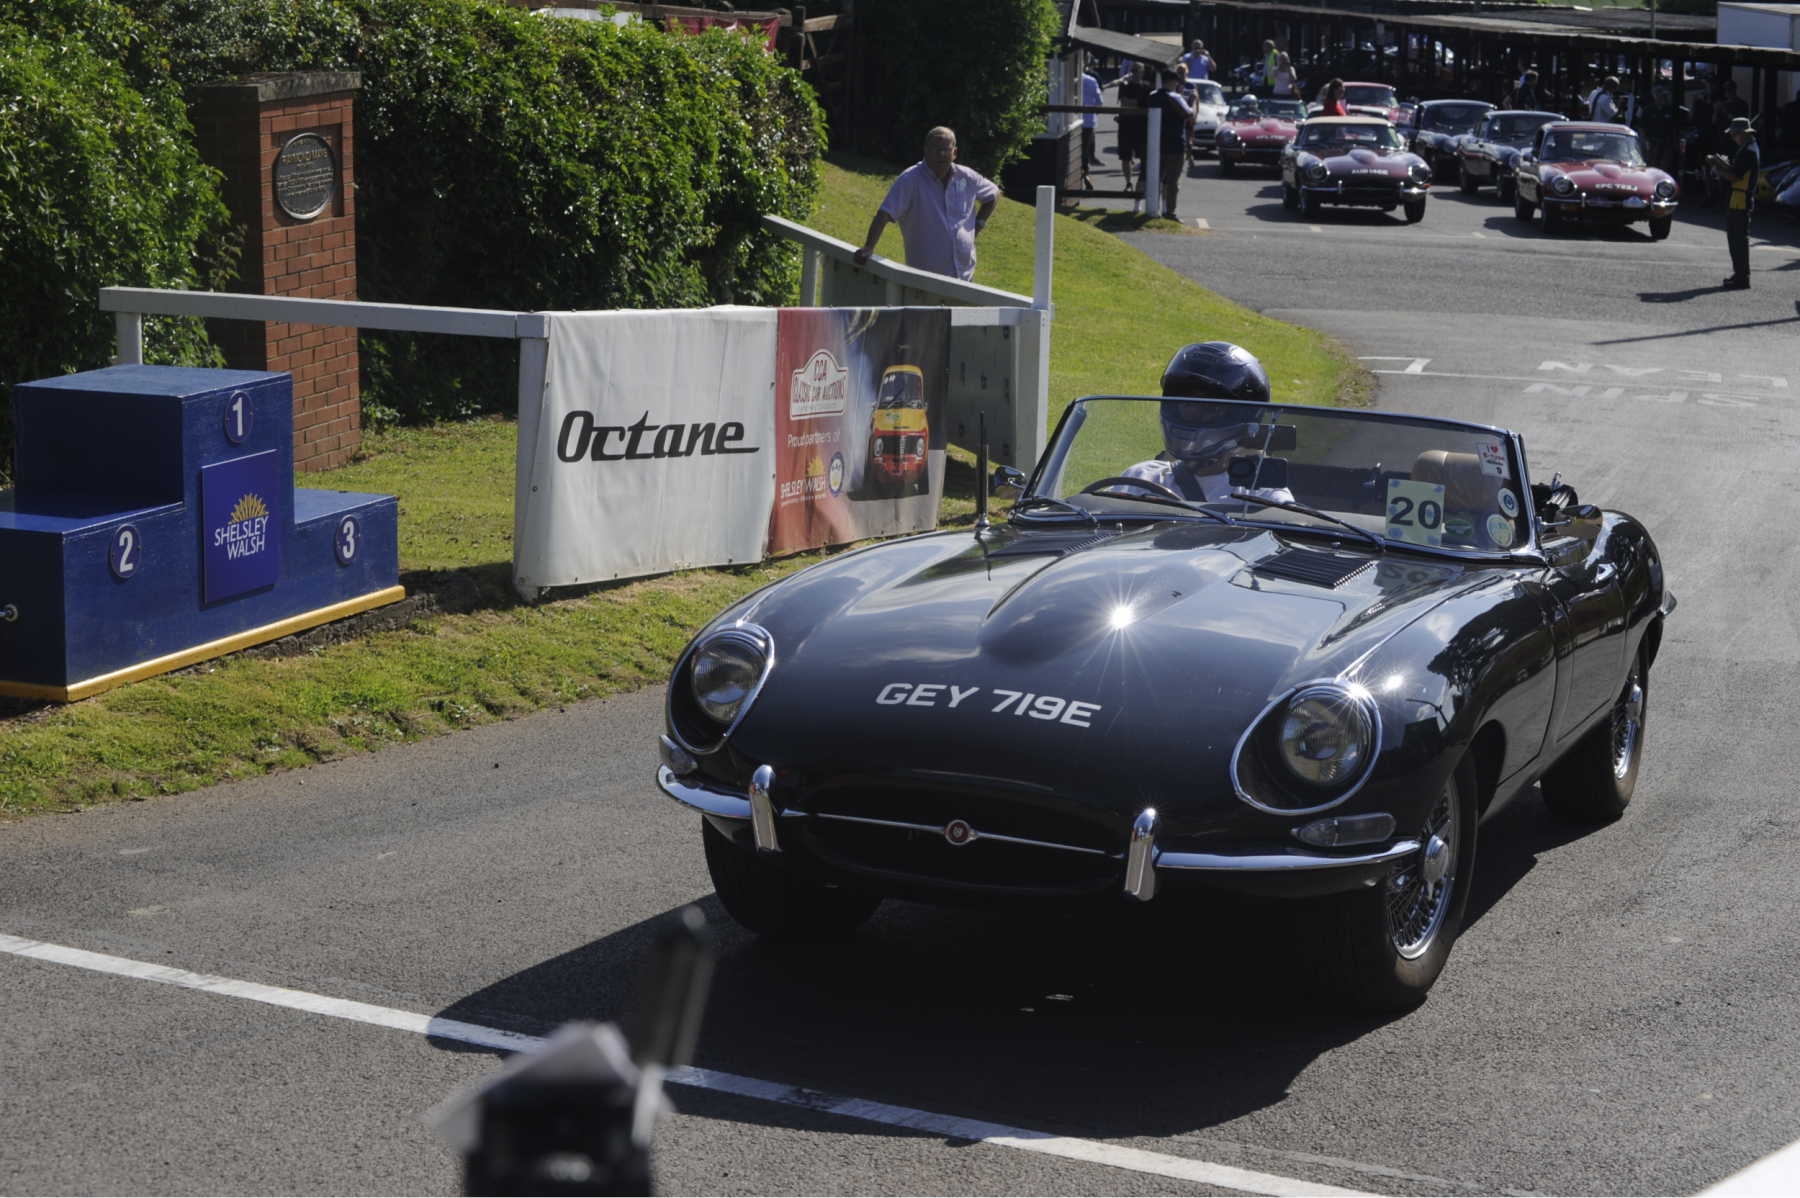 E-type-60-Saturday-photo-by-Abigail-Humphries-23